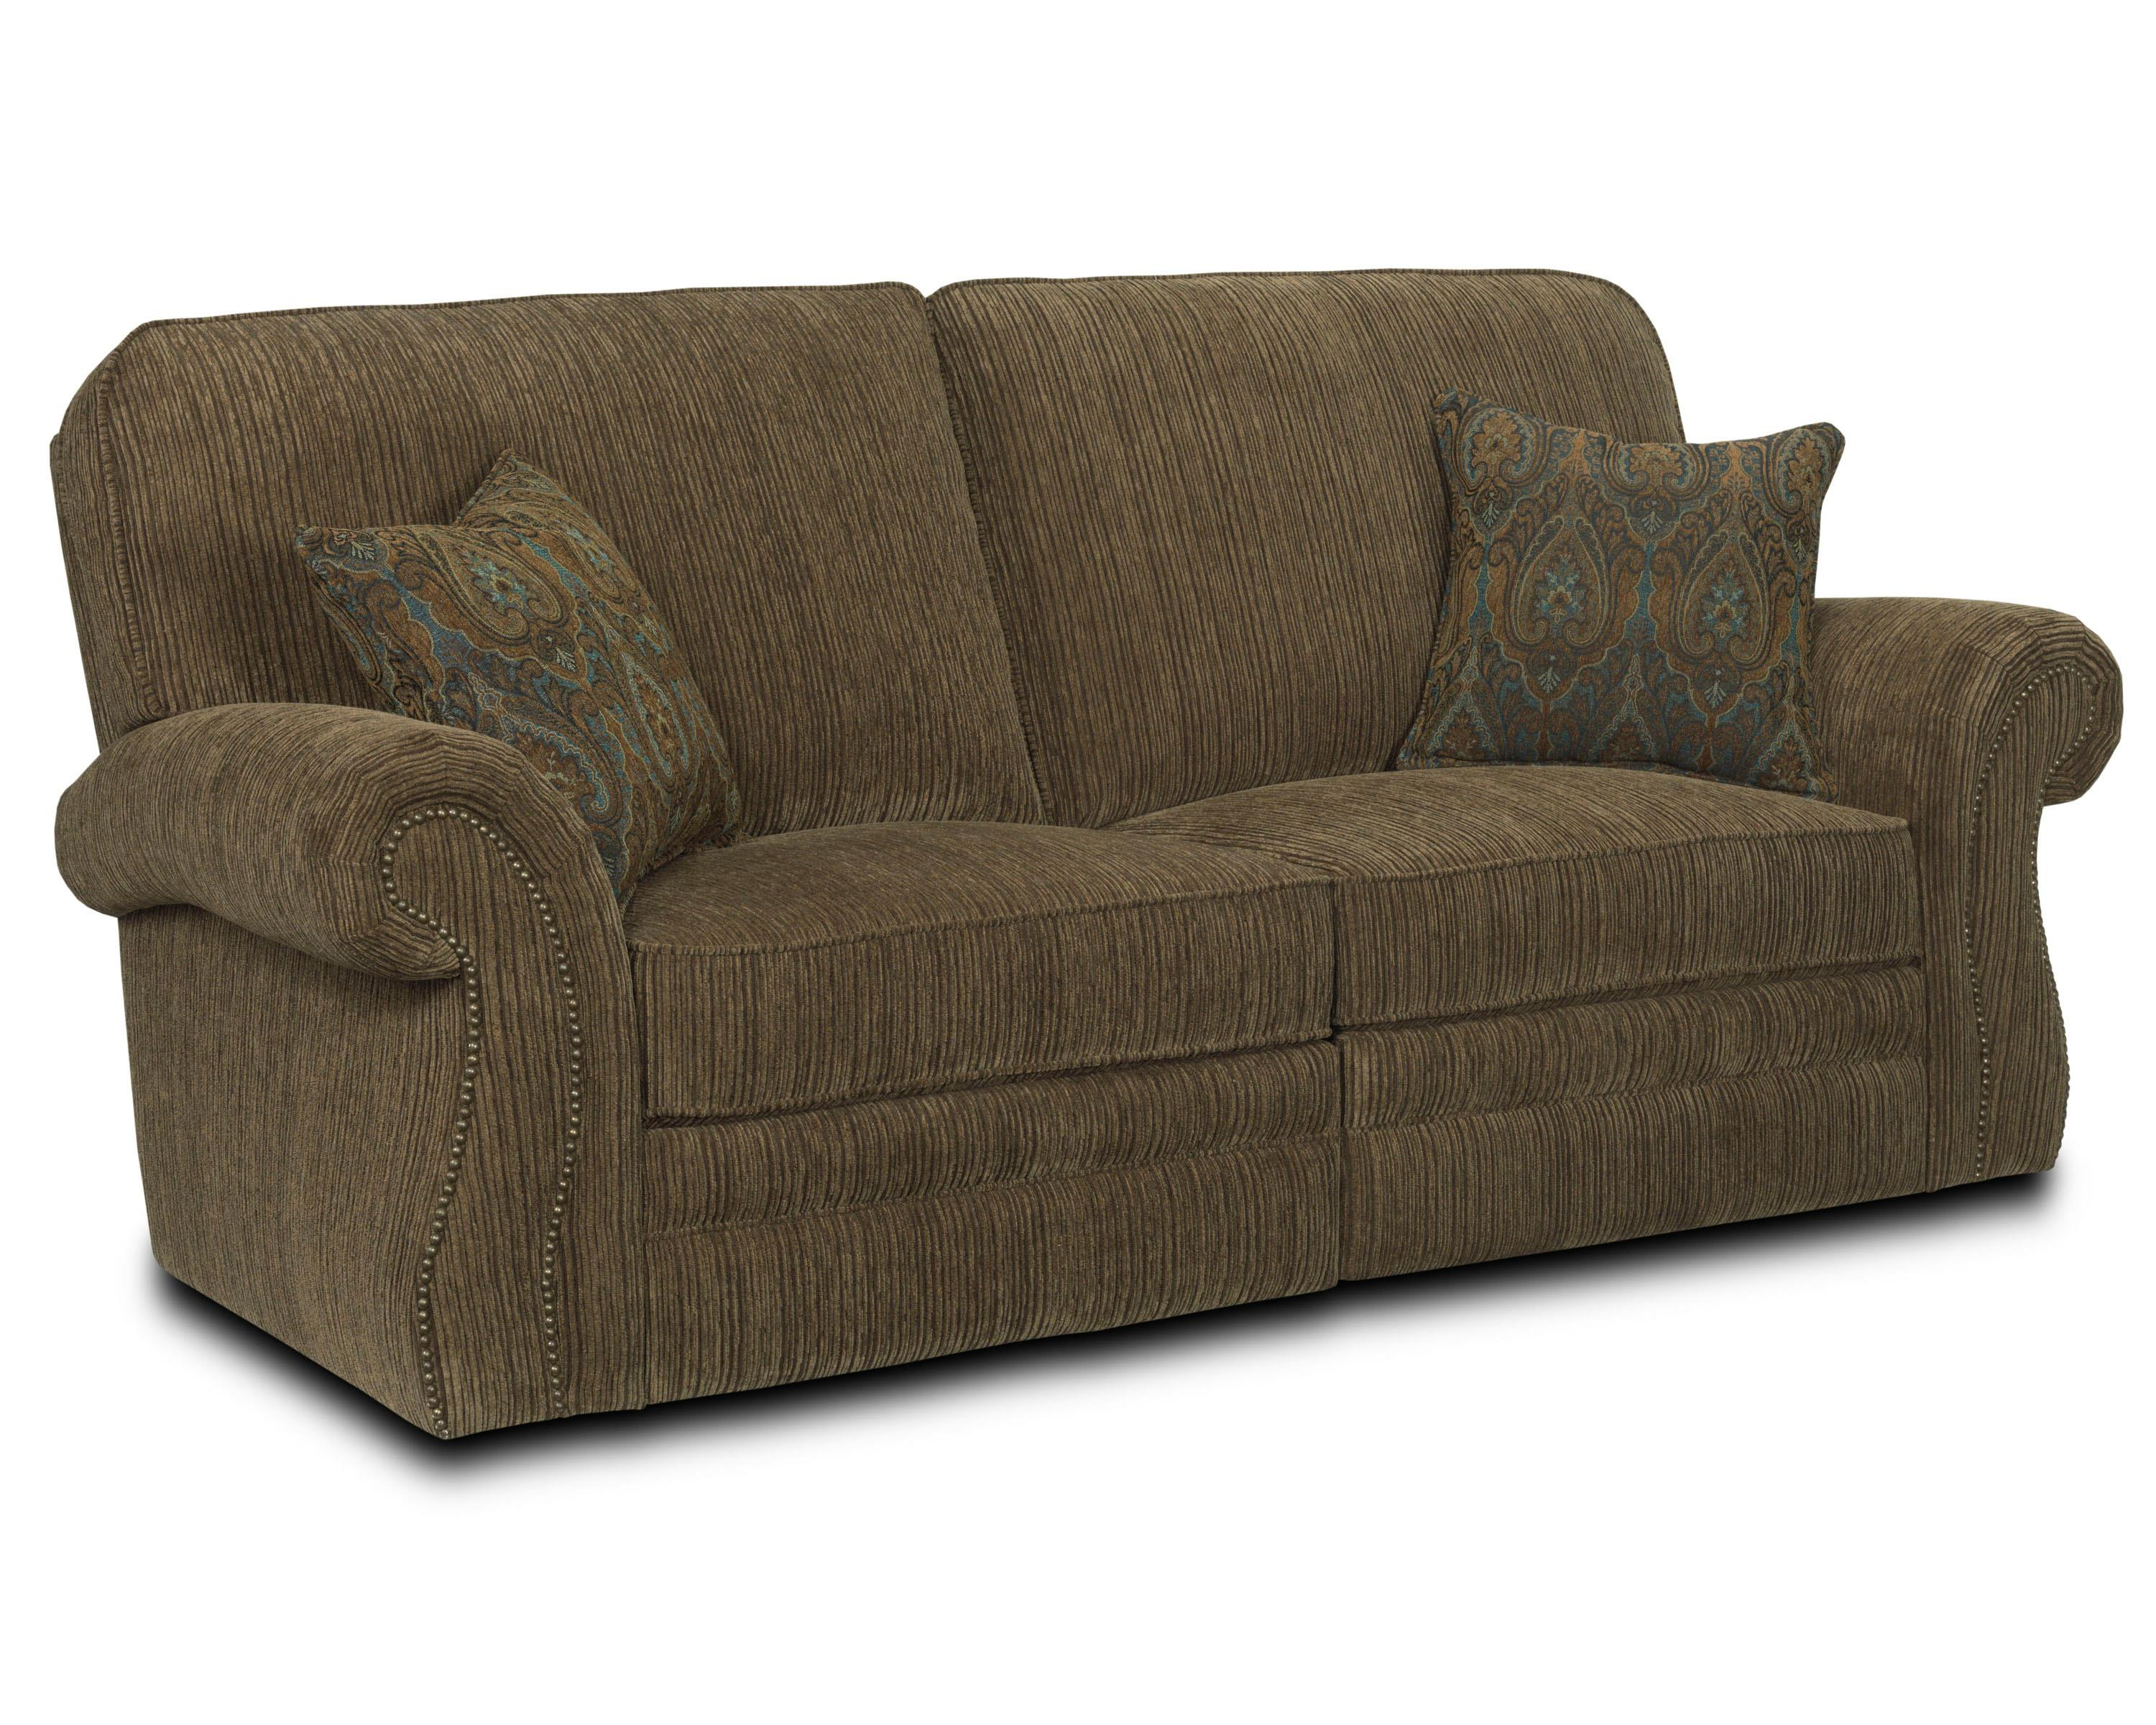 Lane billings 256 39 traditional reclining sofa with for Traditional sofas and loveseats